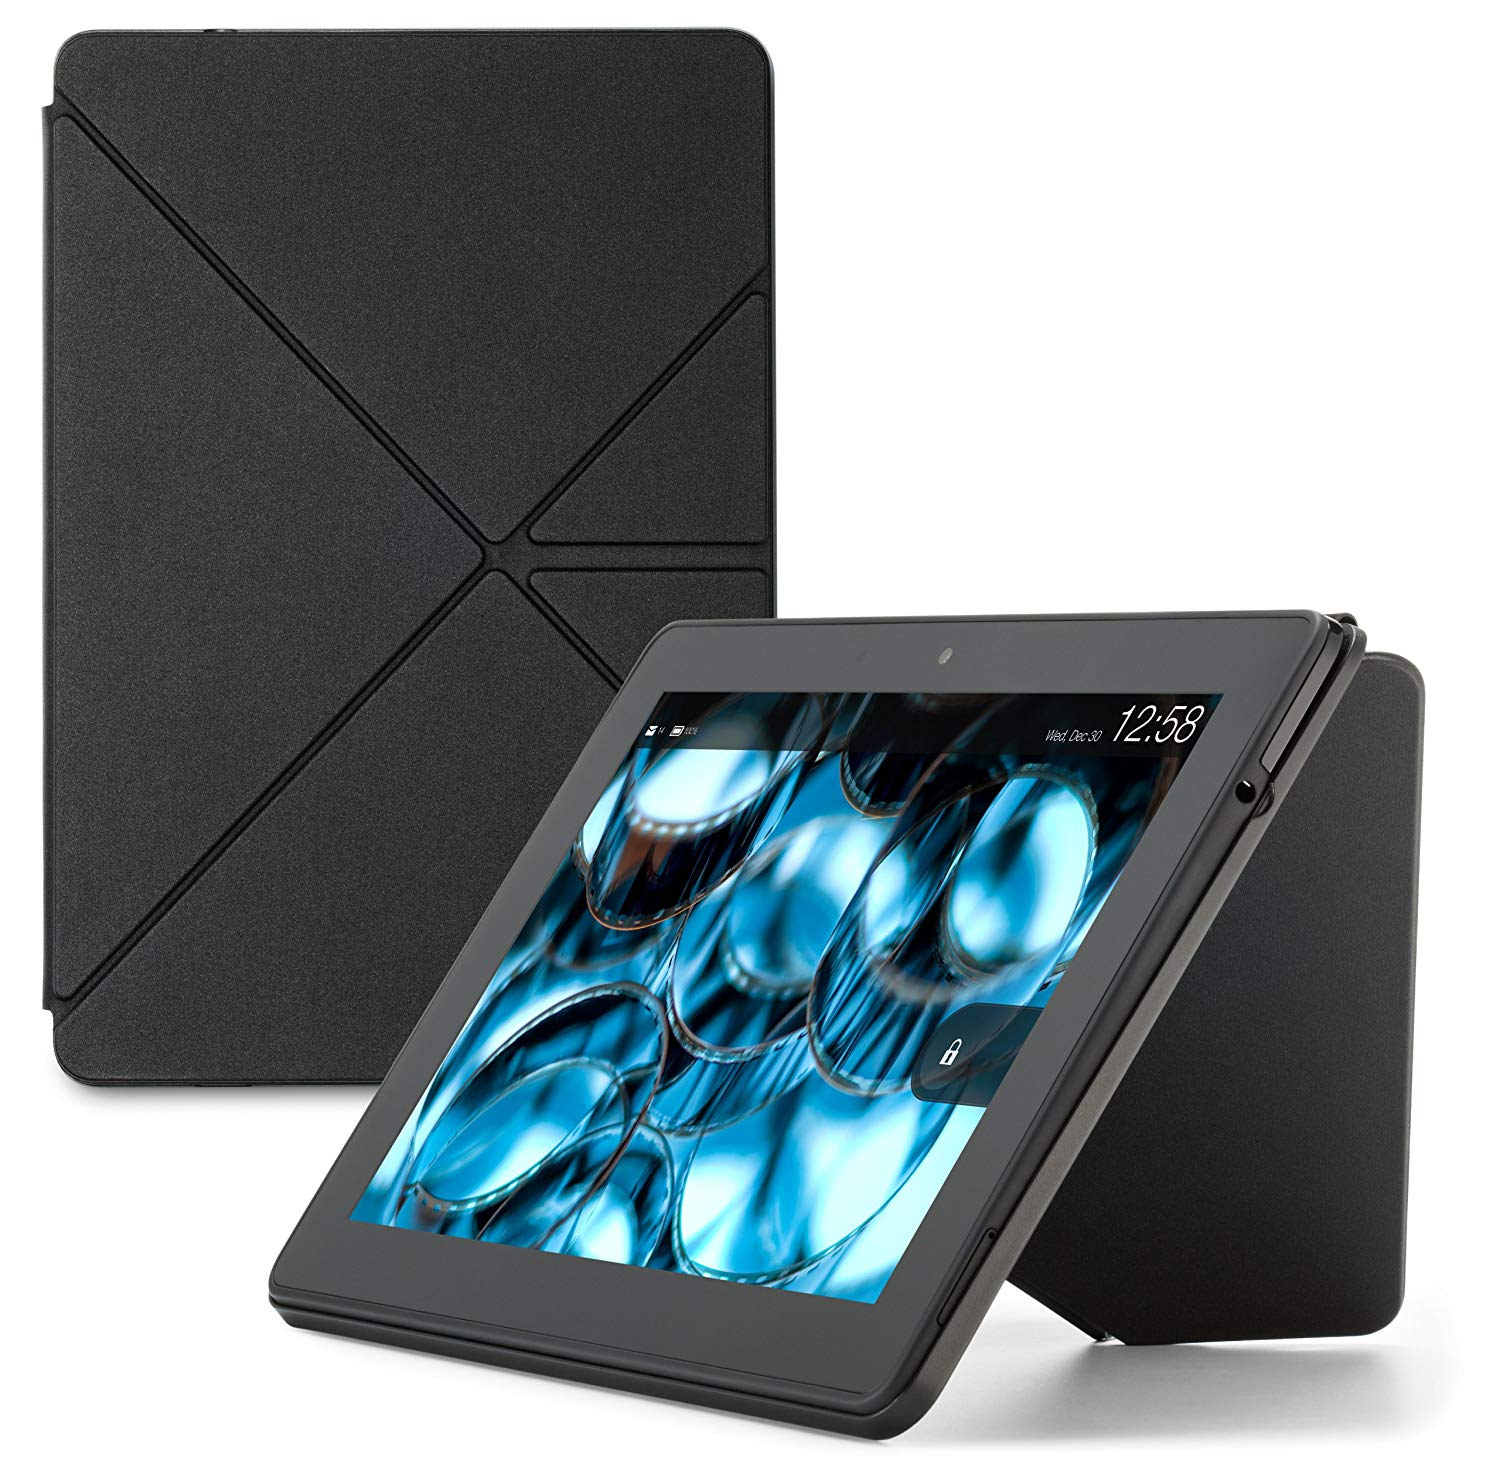 91WtNvpJzrL. SL1500  - The Best 10 Tablets in 2019 You Can Buy now